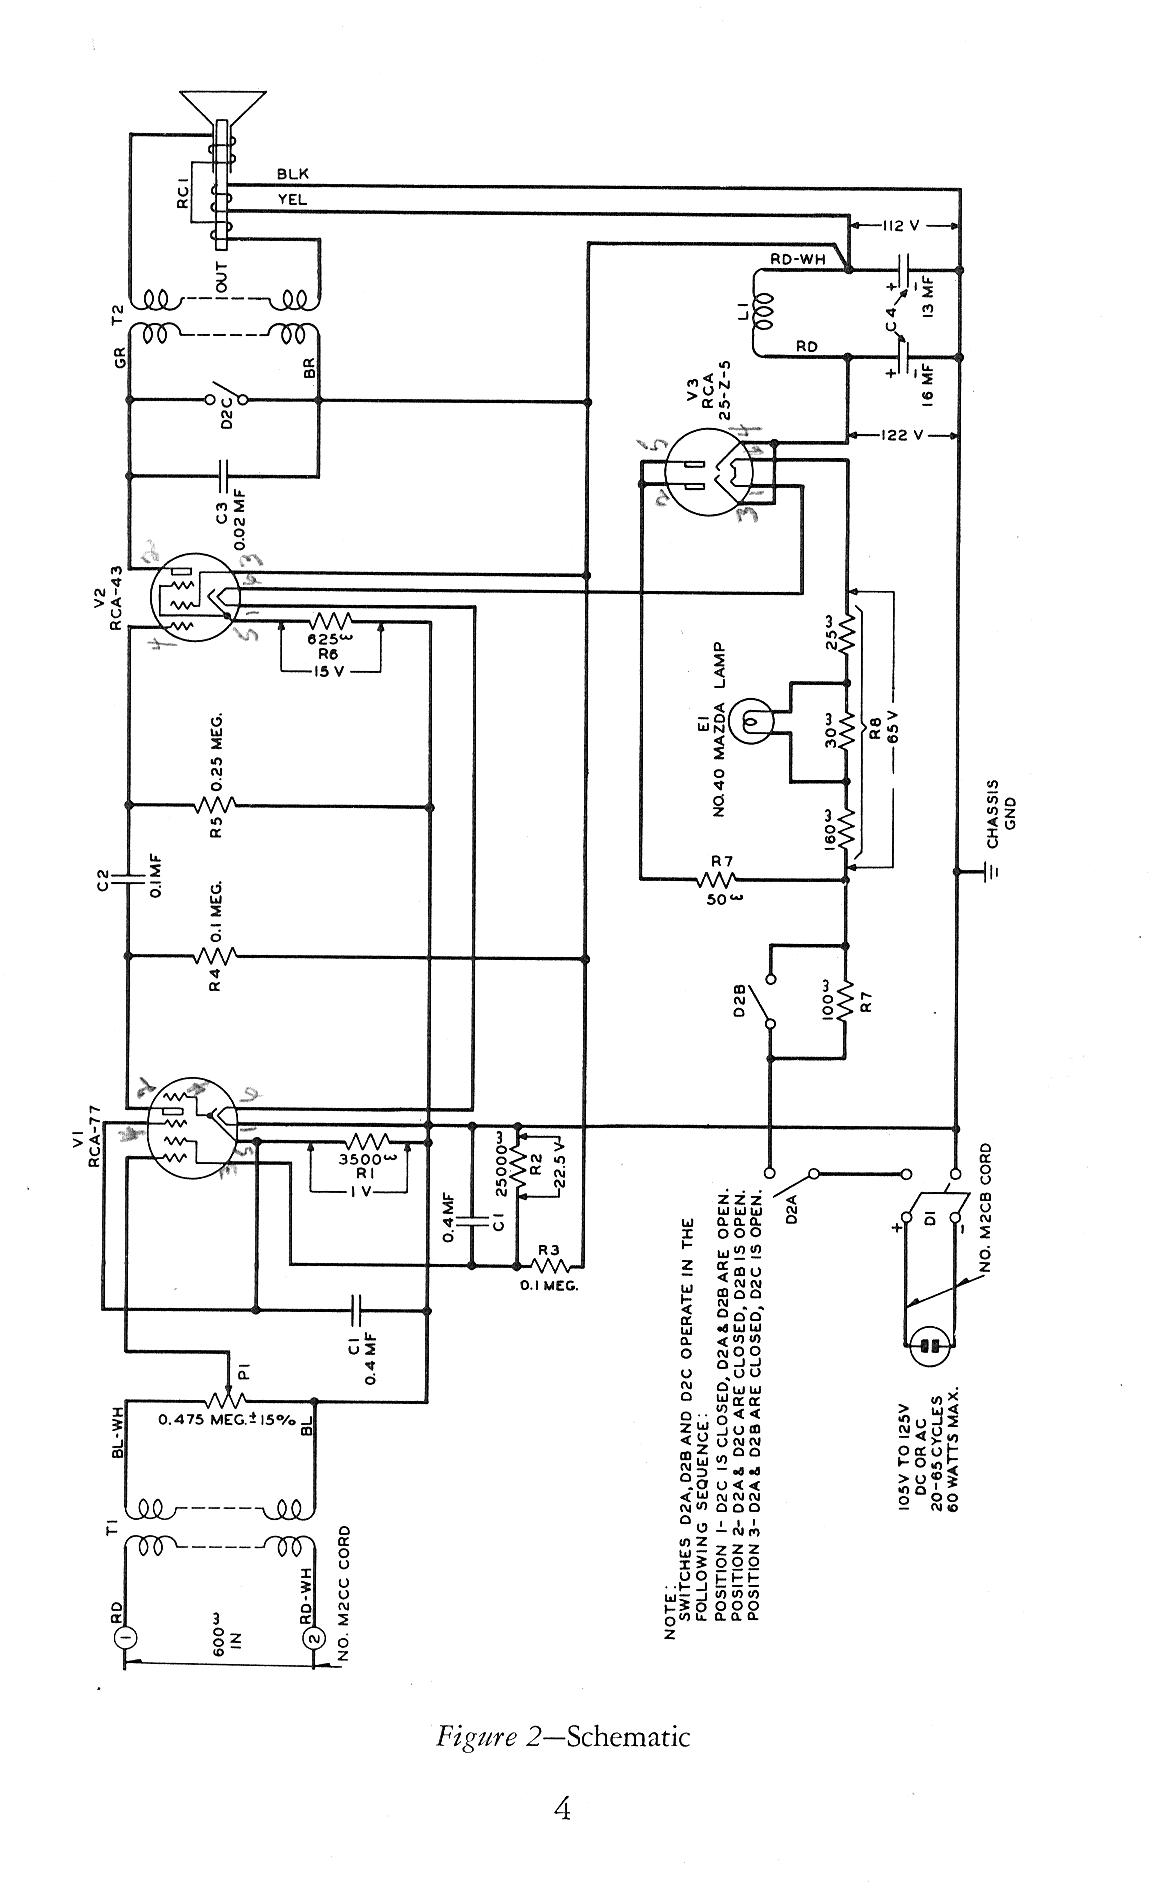 Tel on voip wiring diagram